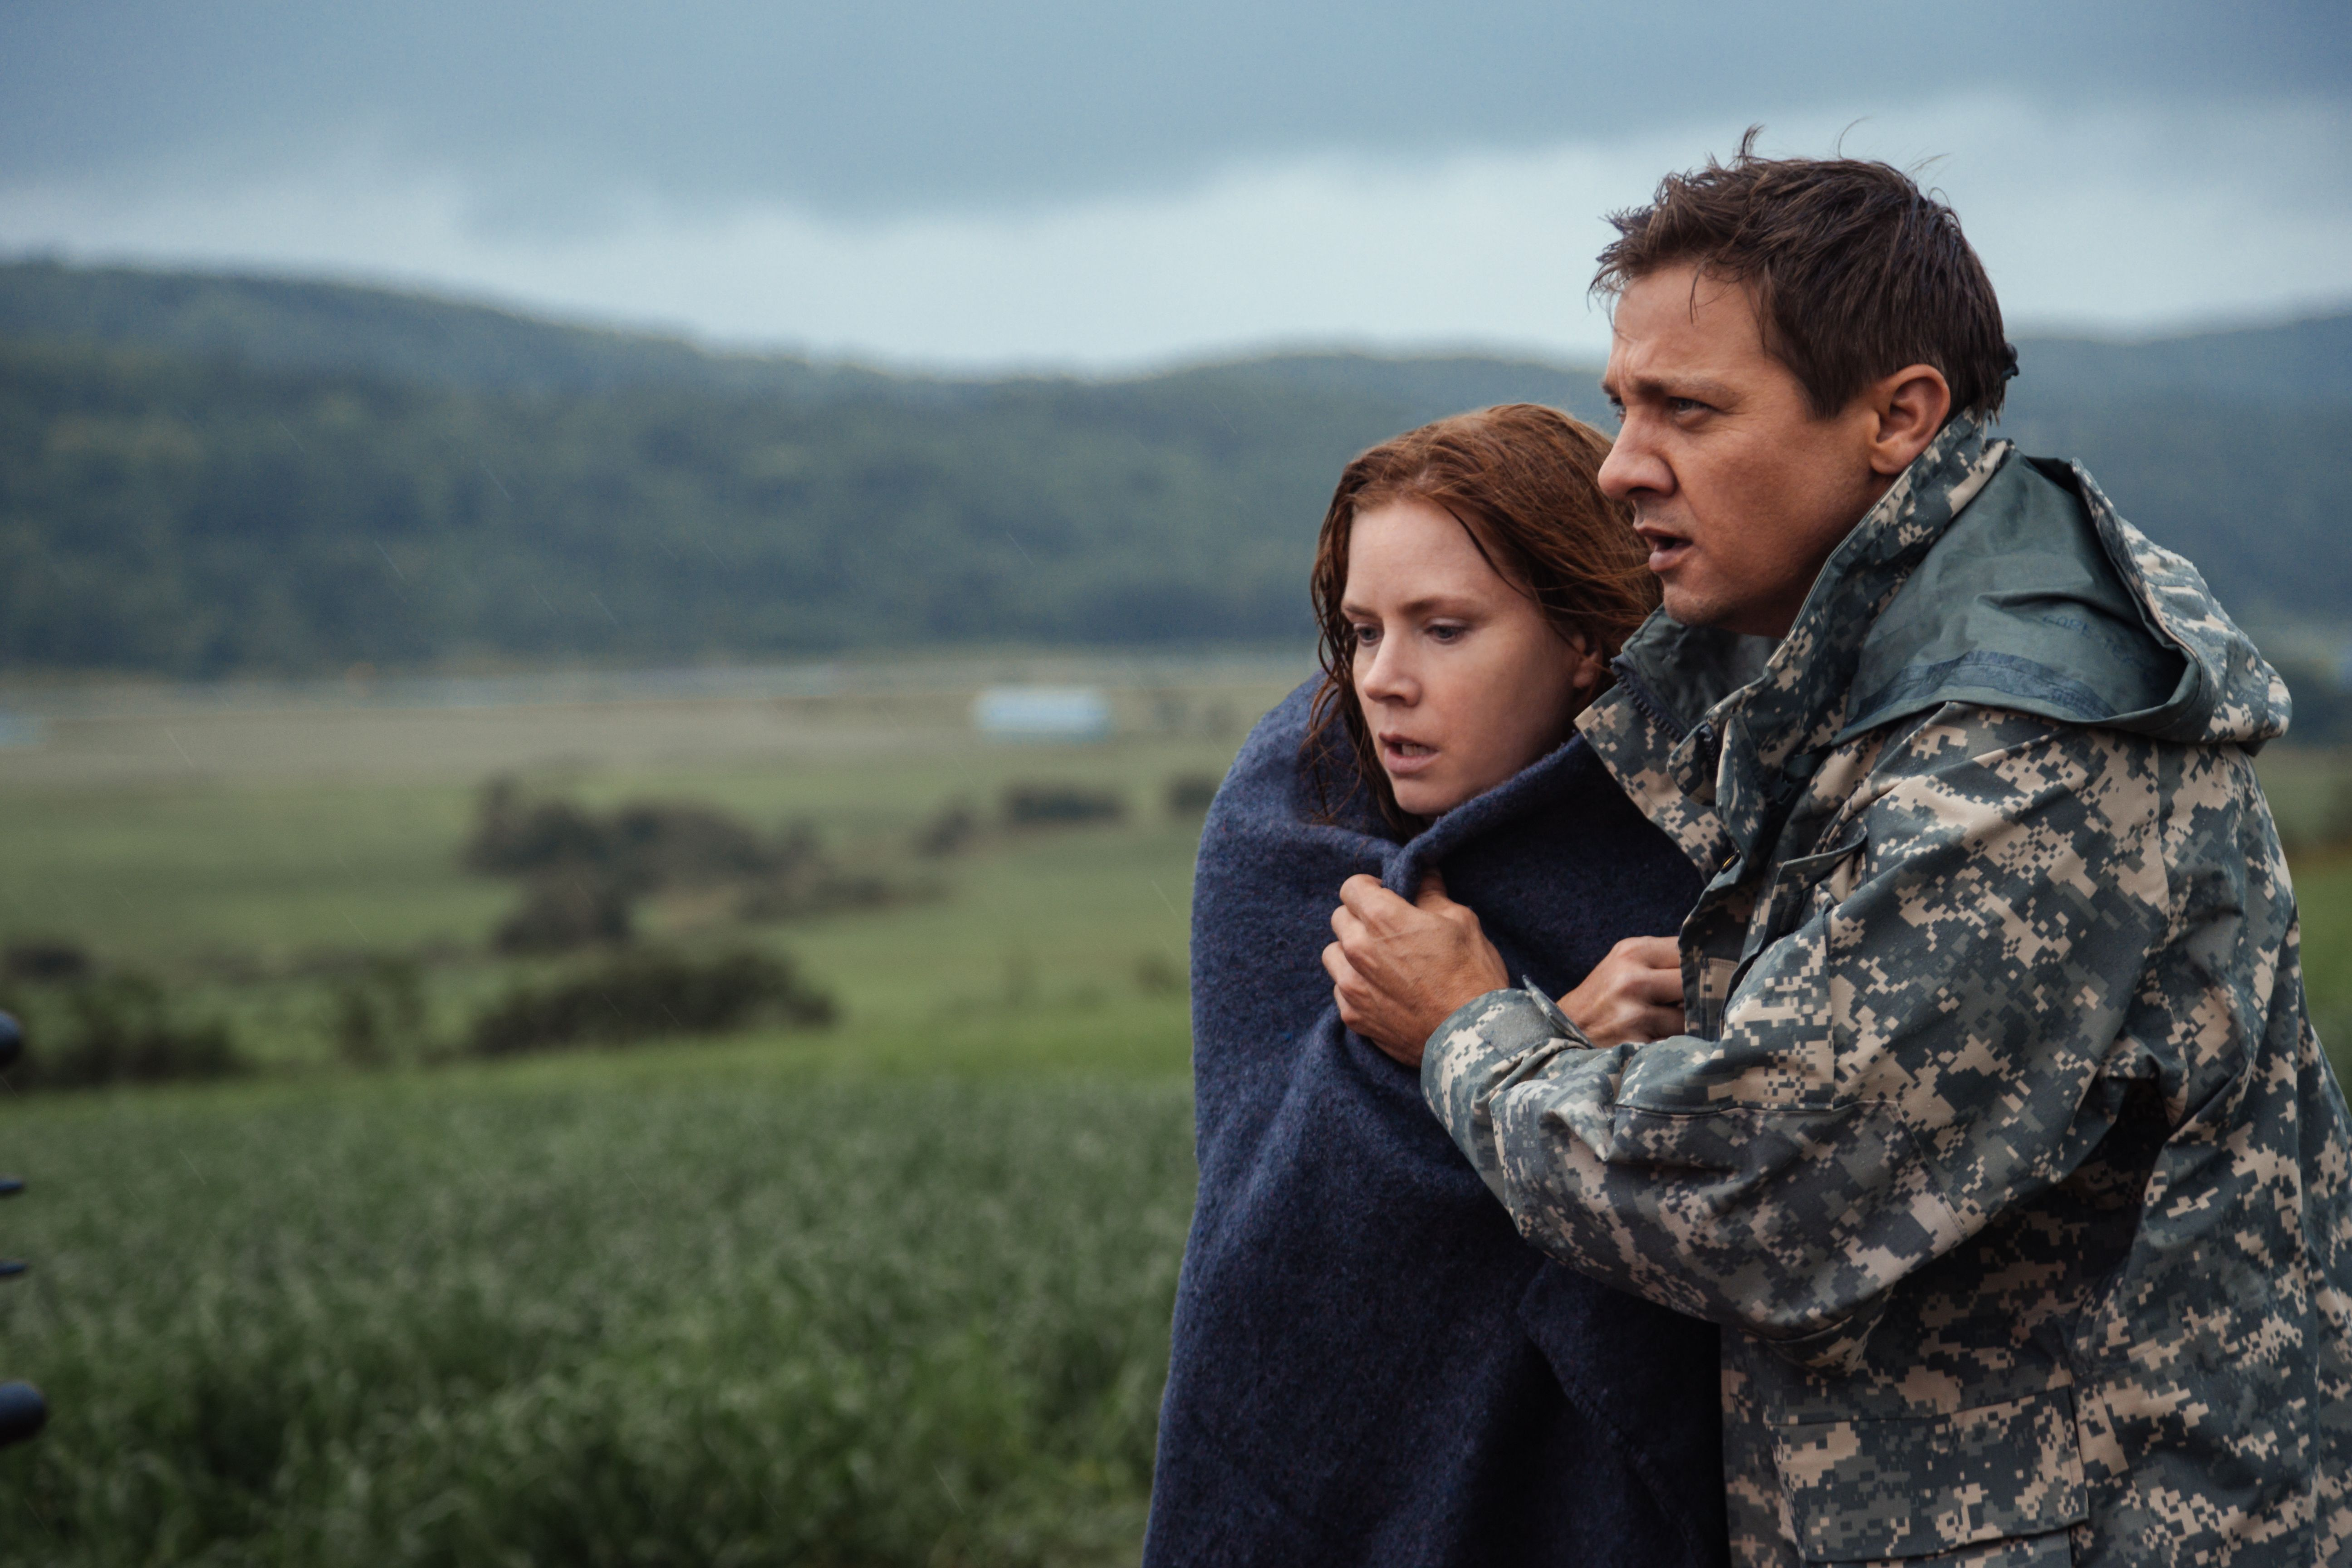 No Merchandising. Editorial Use Only. No Book Cover UsageMandatory Credit: Photo by Paramount/Kobal/REX/Shutterstock (7675364l) (L-R) Jeremy Renner and Amy Adams 'Arrival' Film - 2016